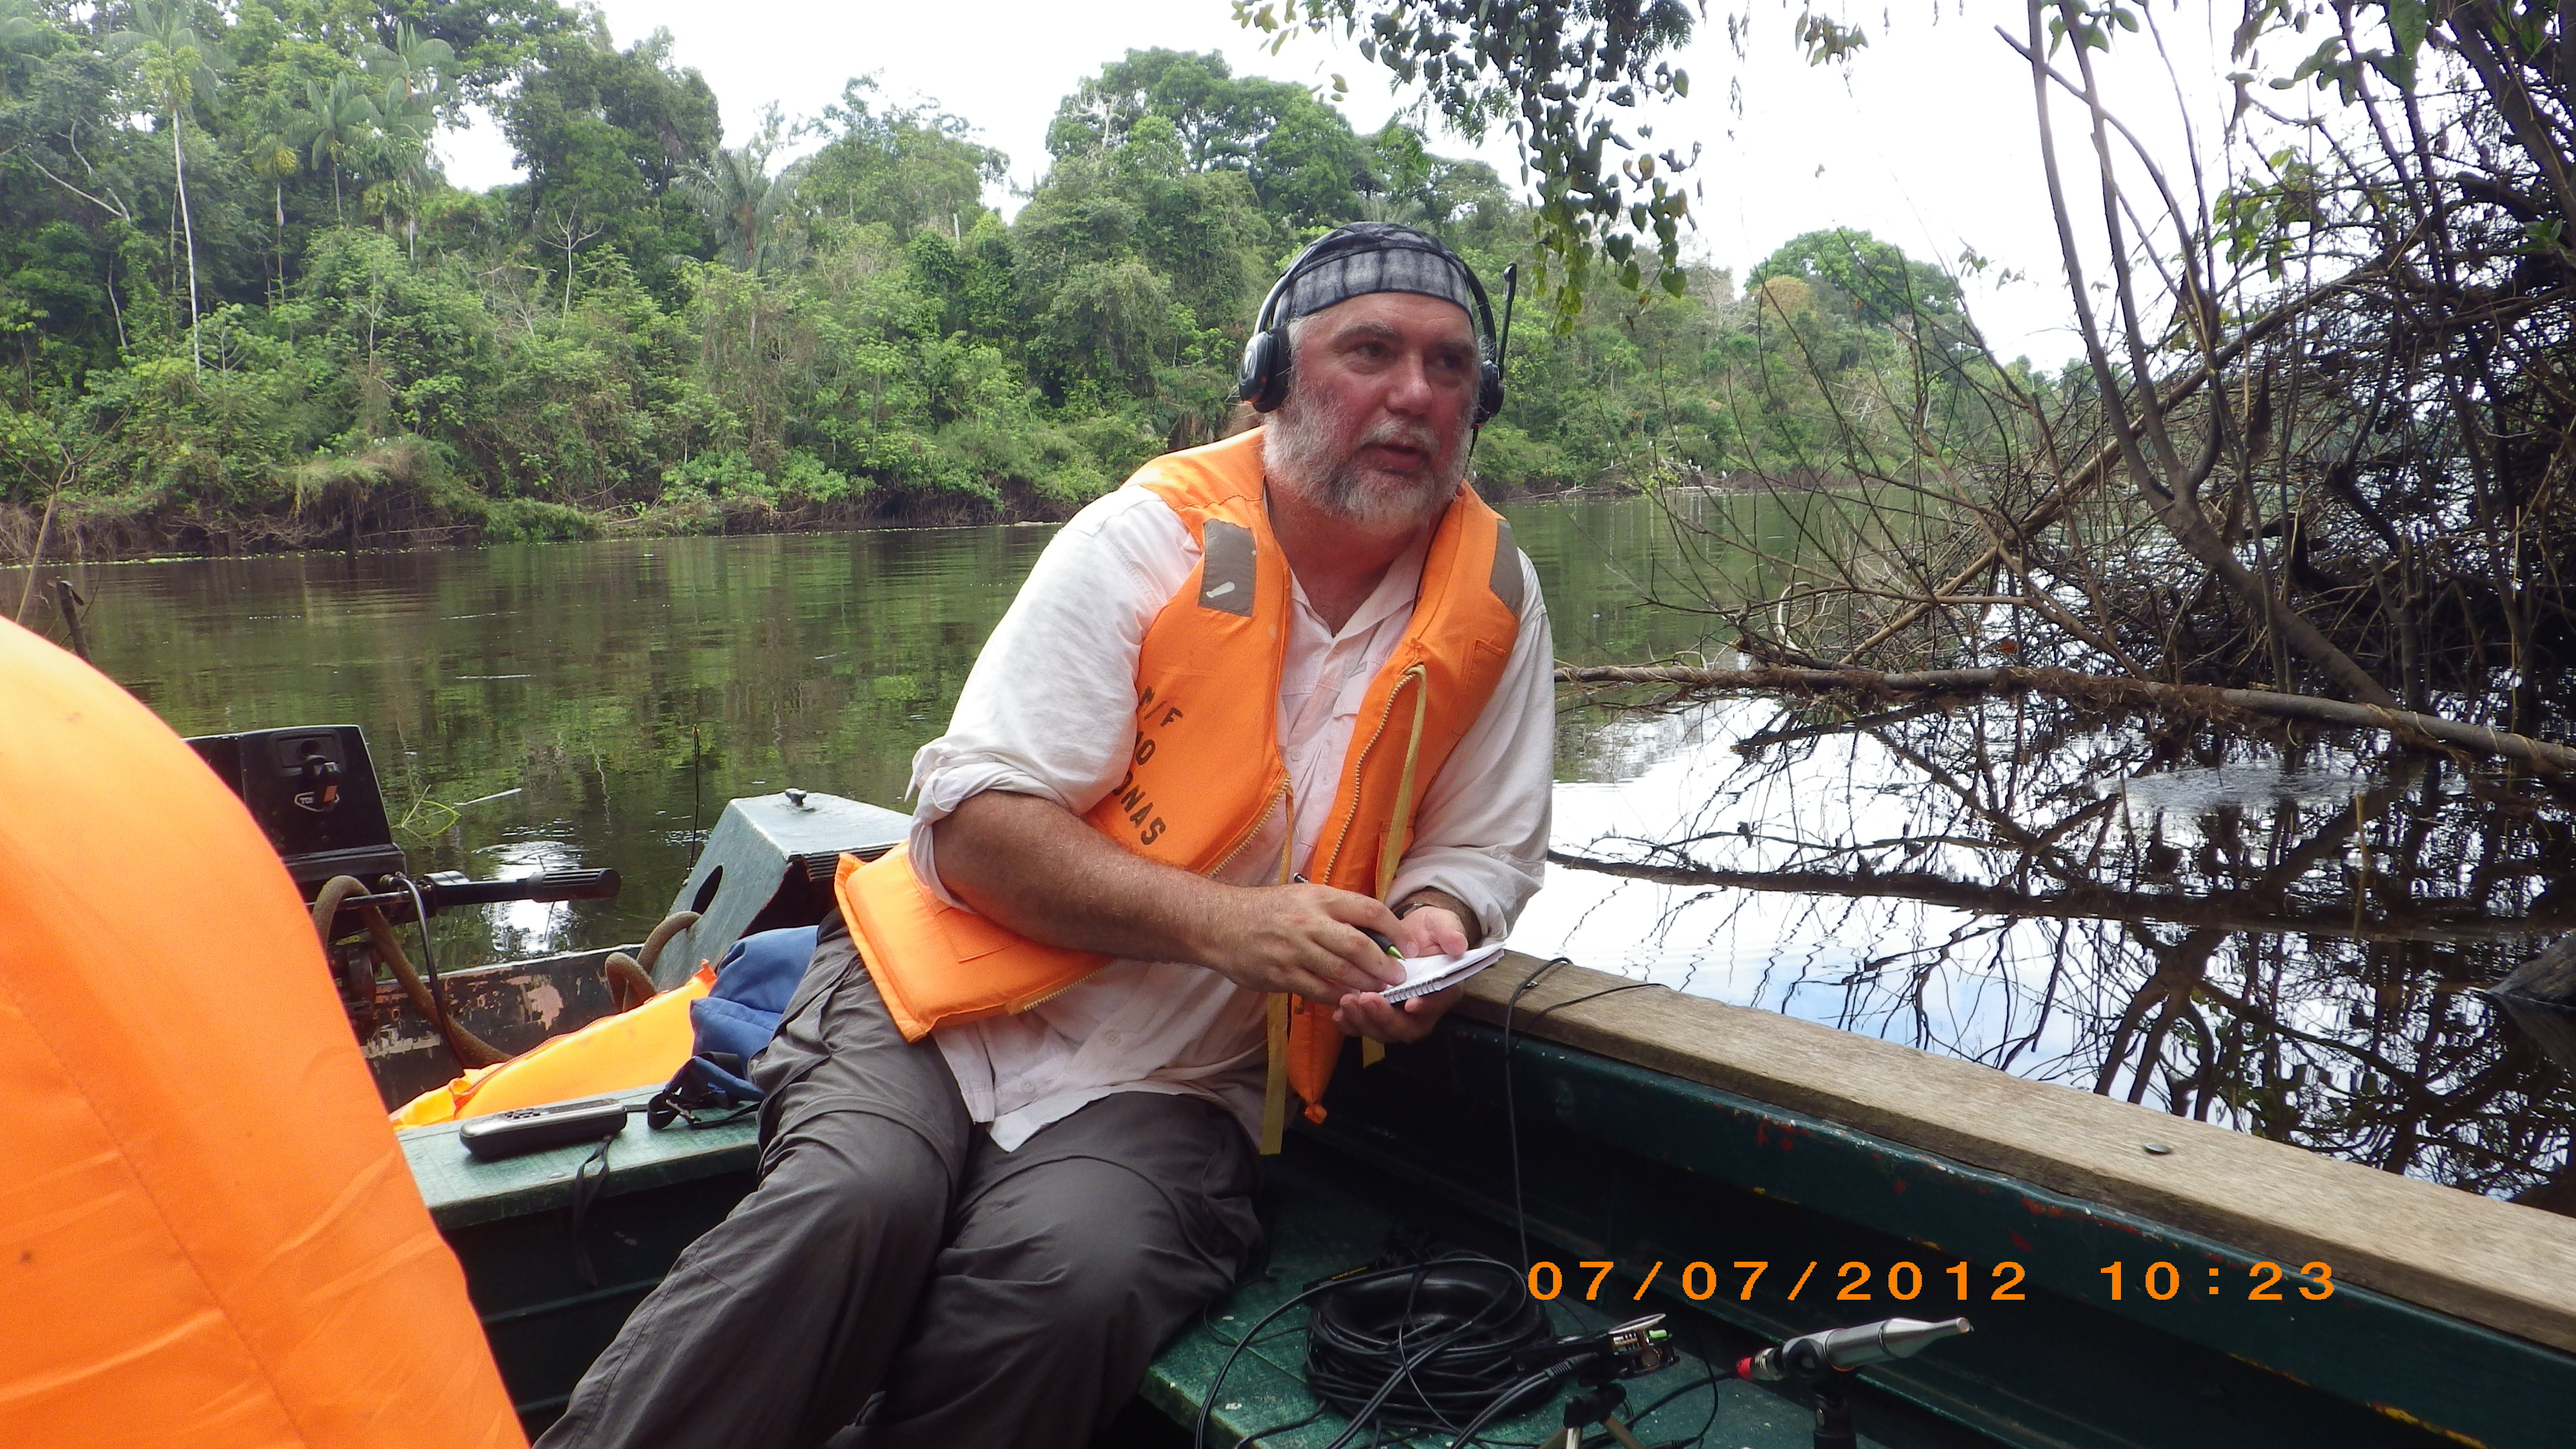 Rountree recording in the Amazon